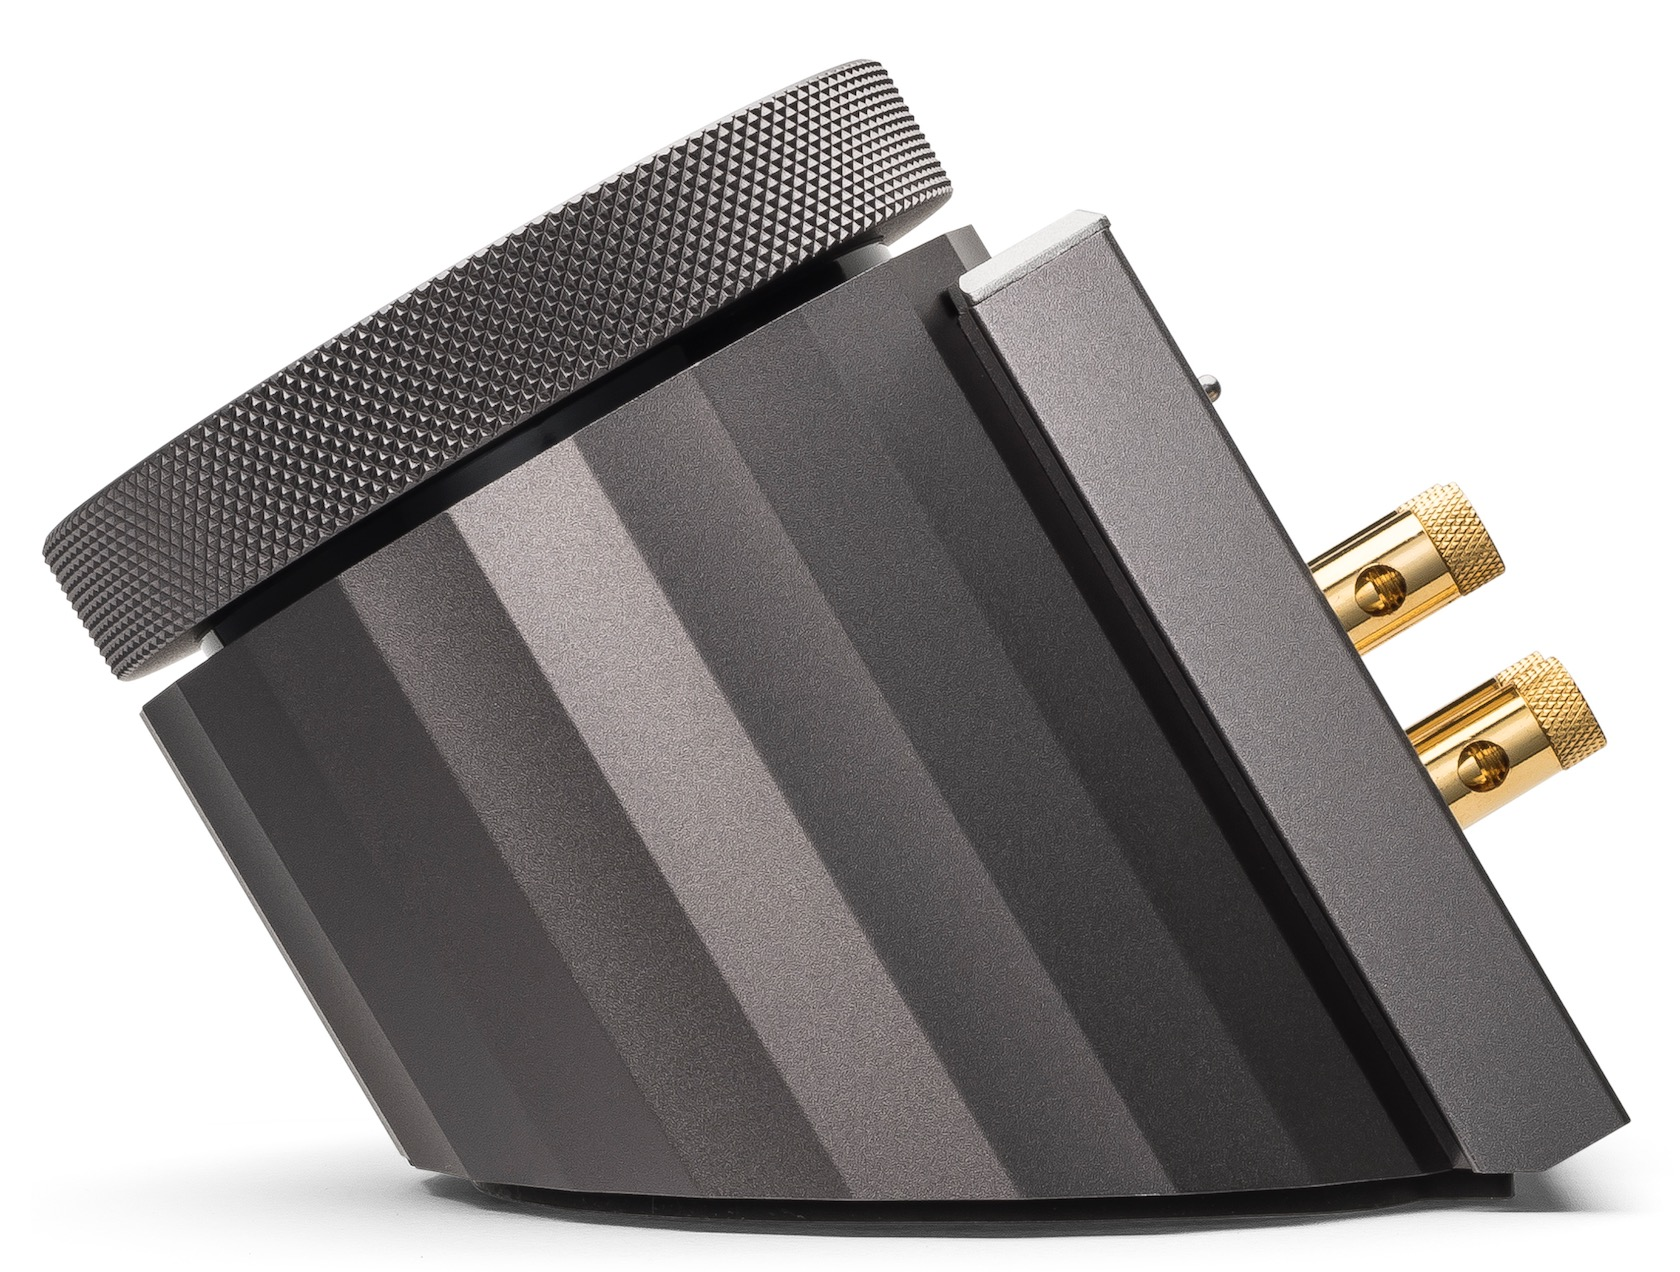 Astell&Kern ACRO L1000: 32bit desktop headphone amplifier/DAC